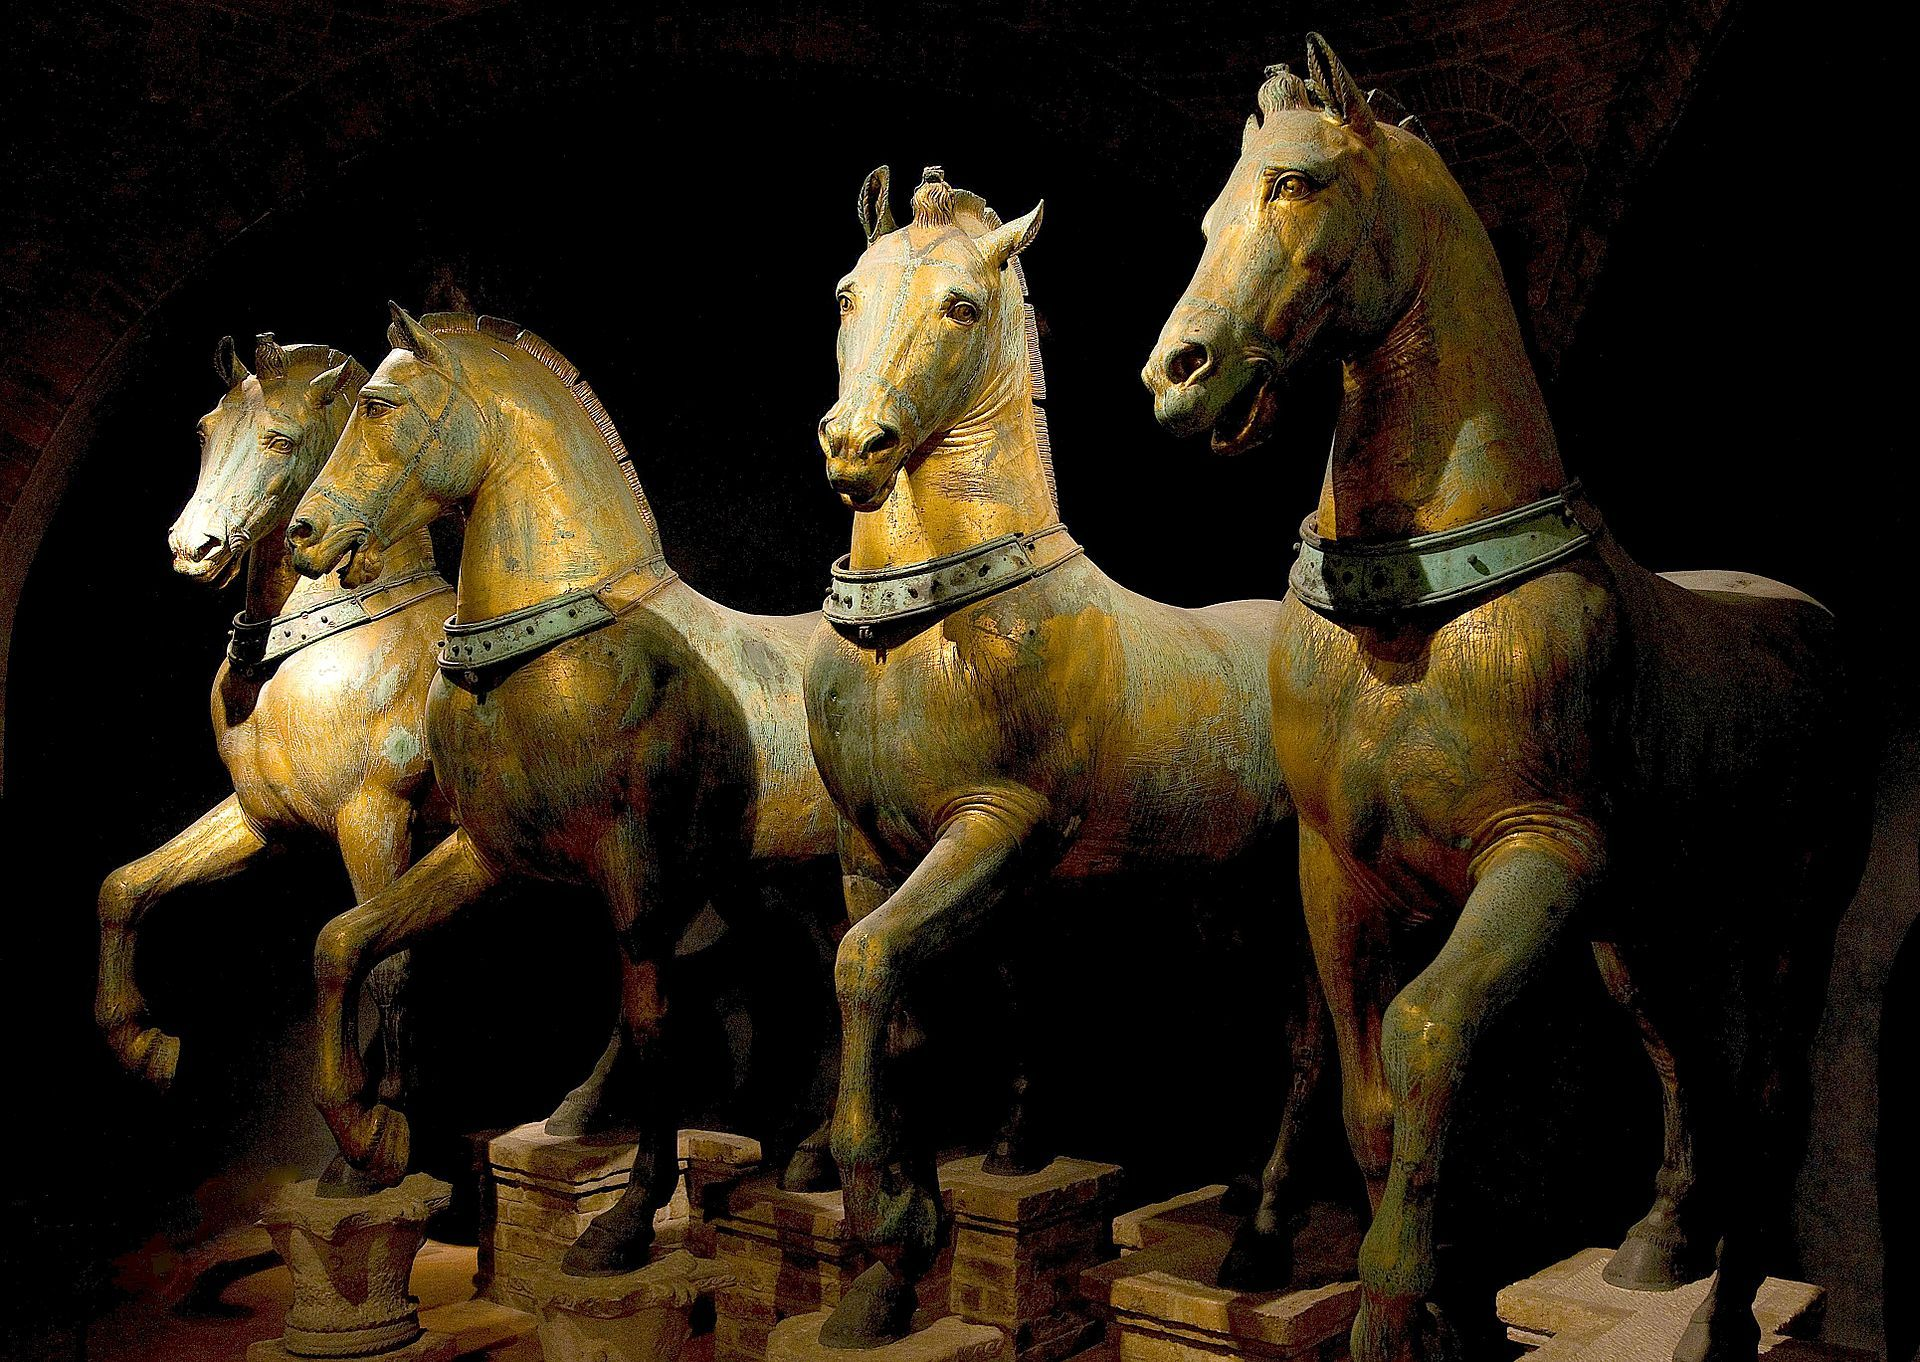 The original Horses in the museum